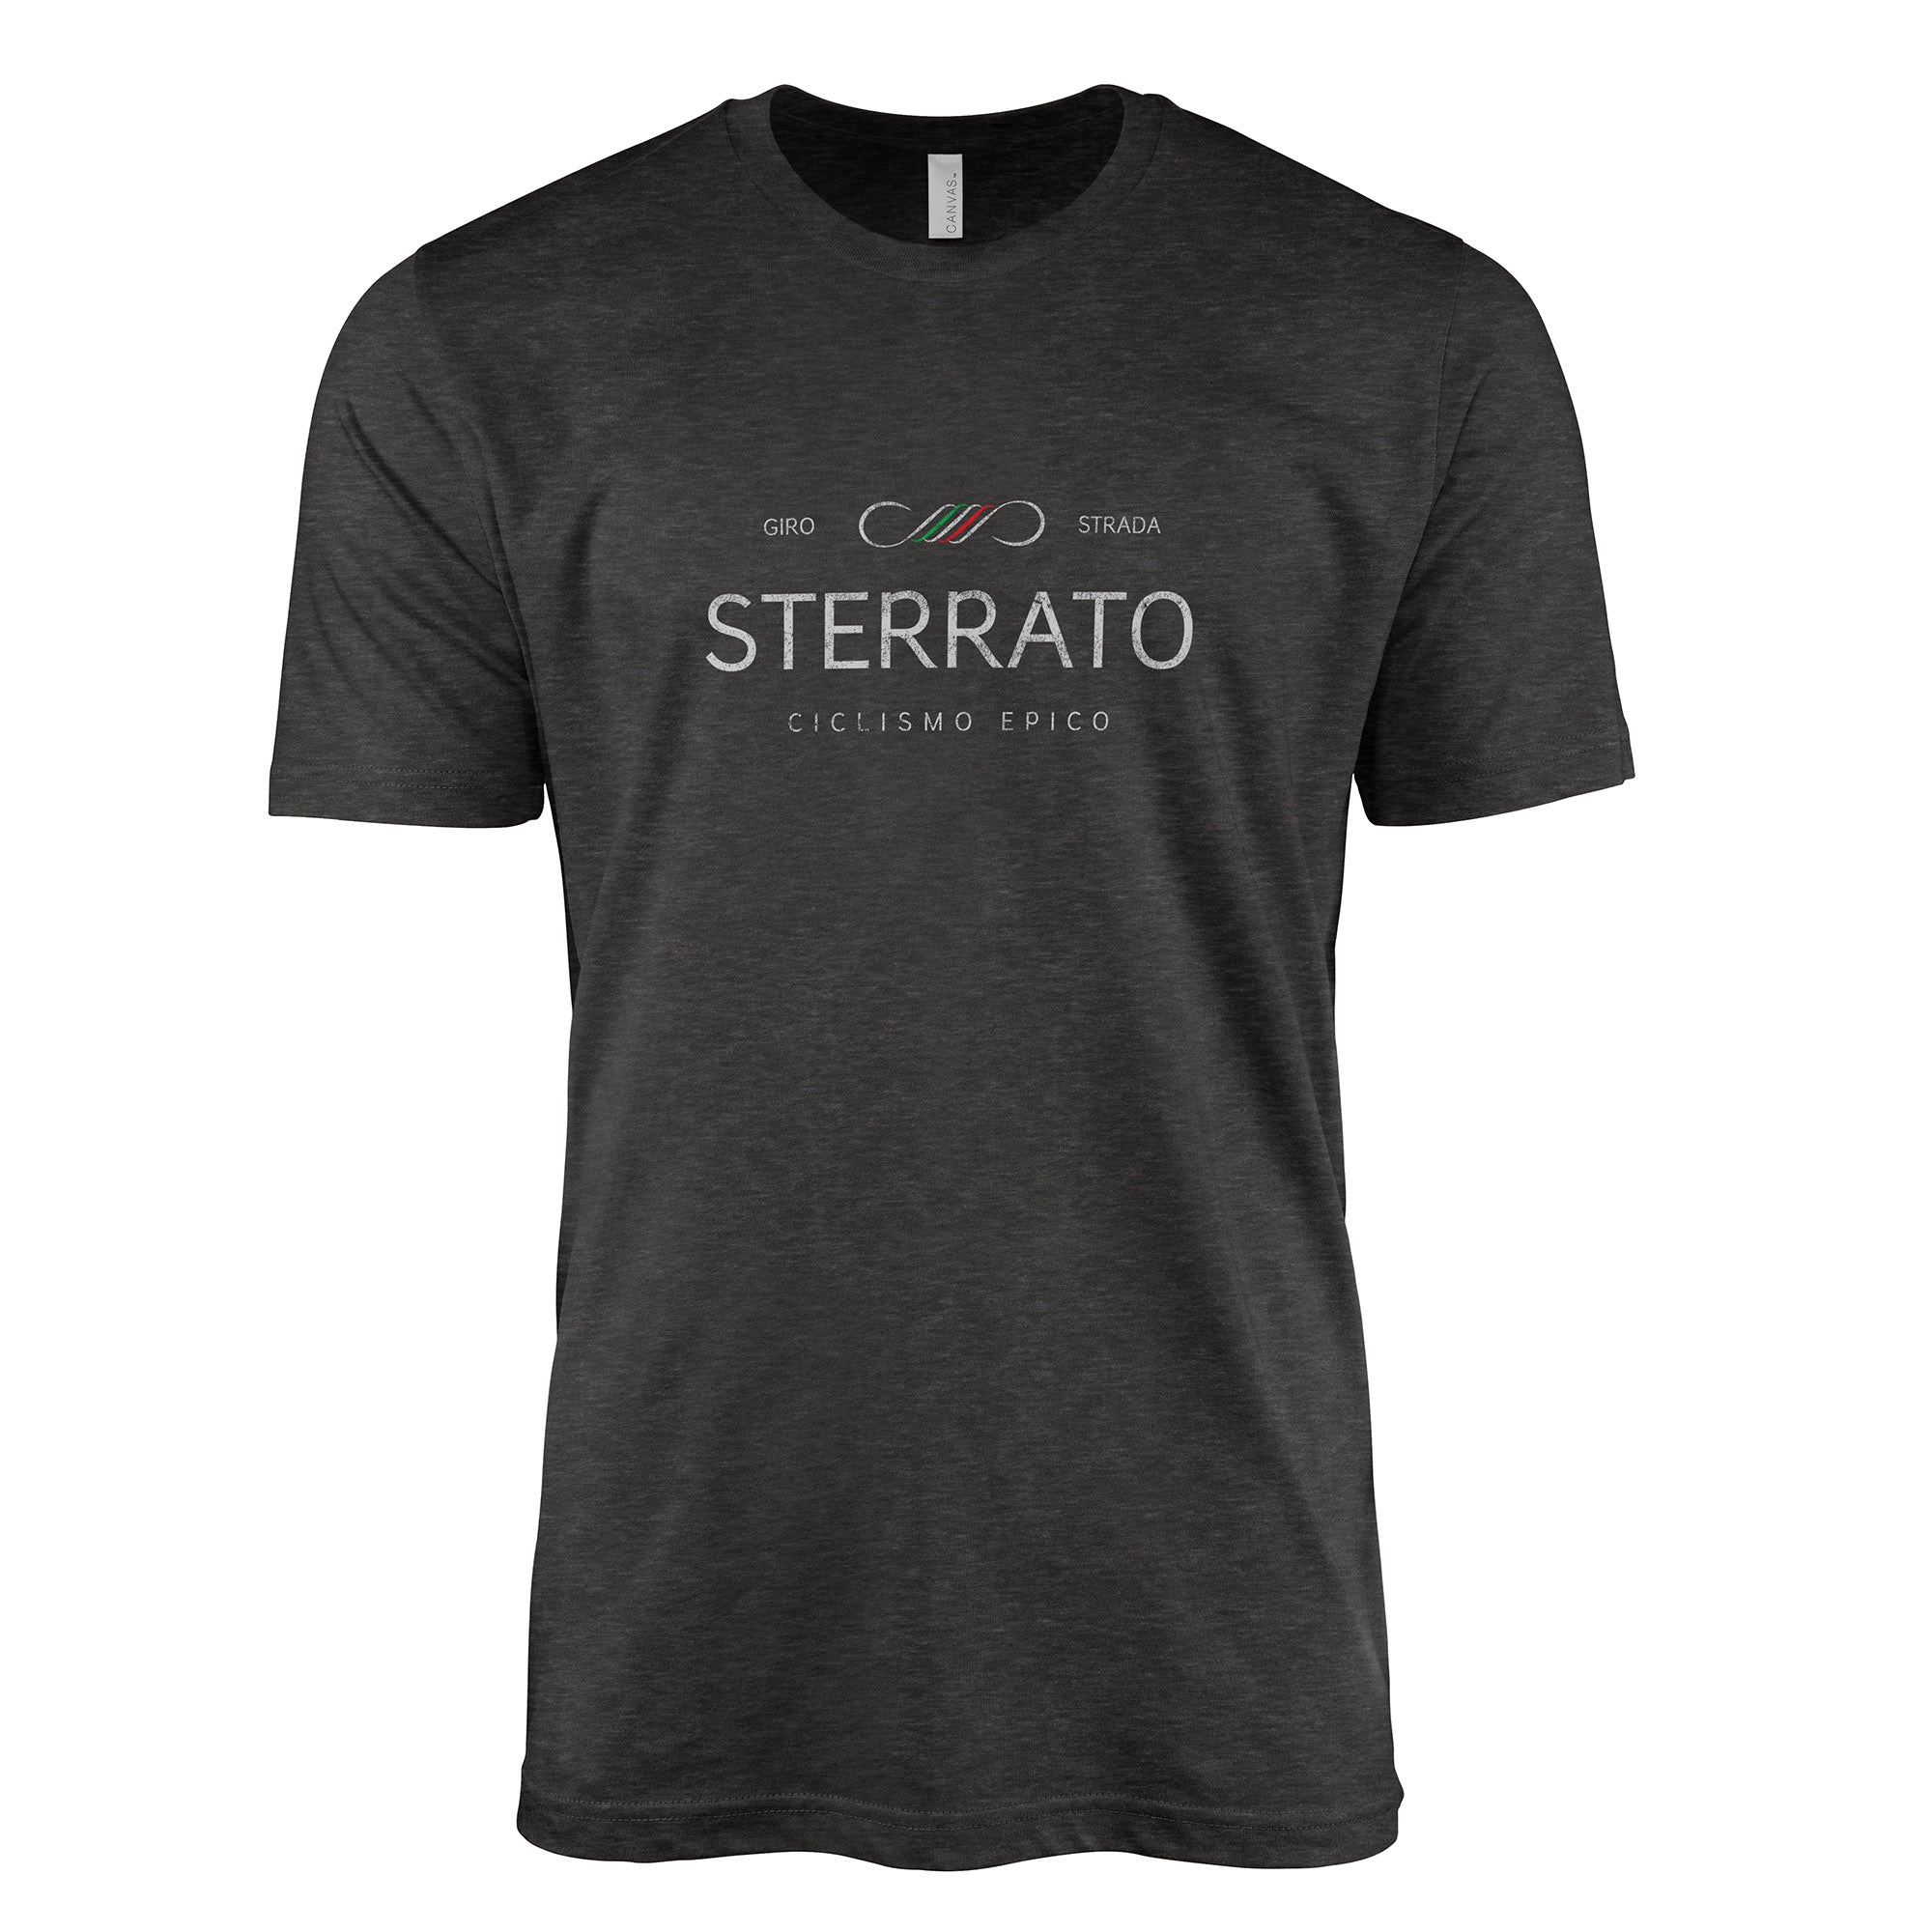 Camiseta Unisex STERRATO - Dark Grey